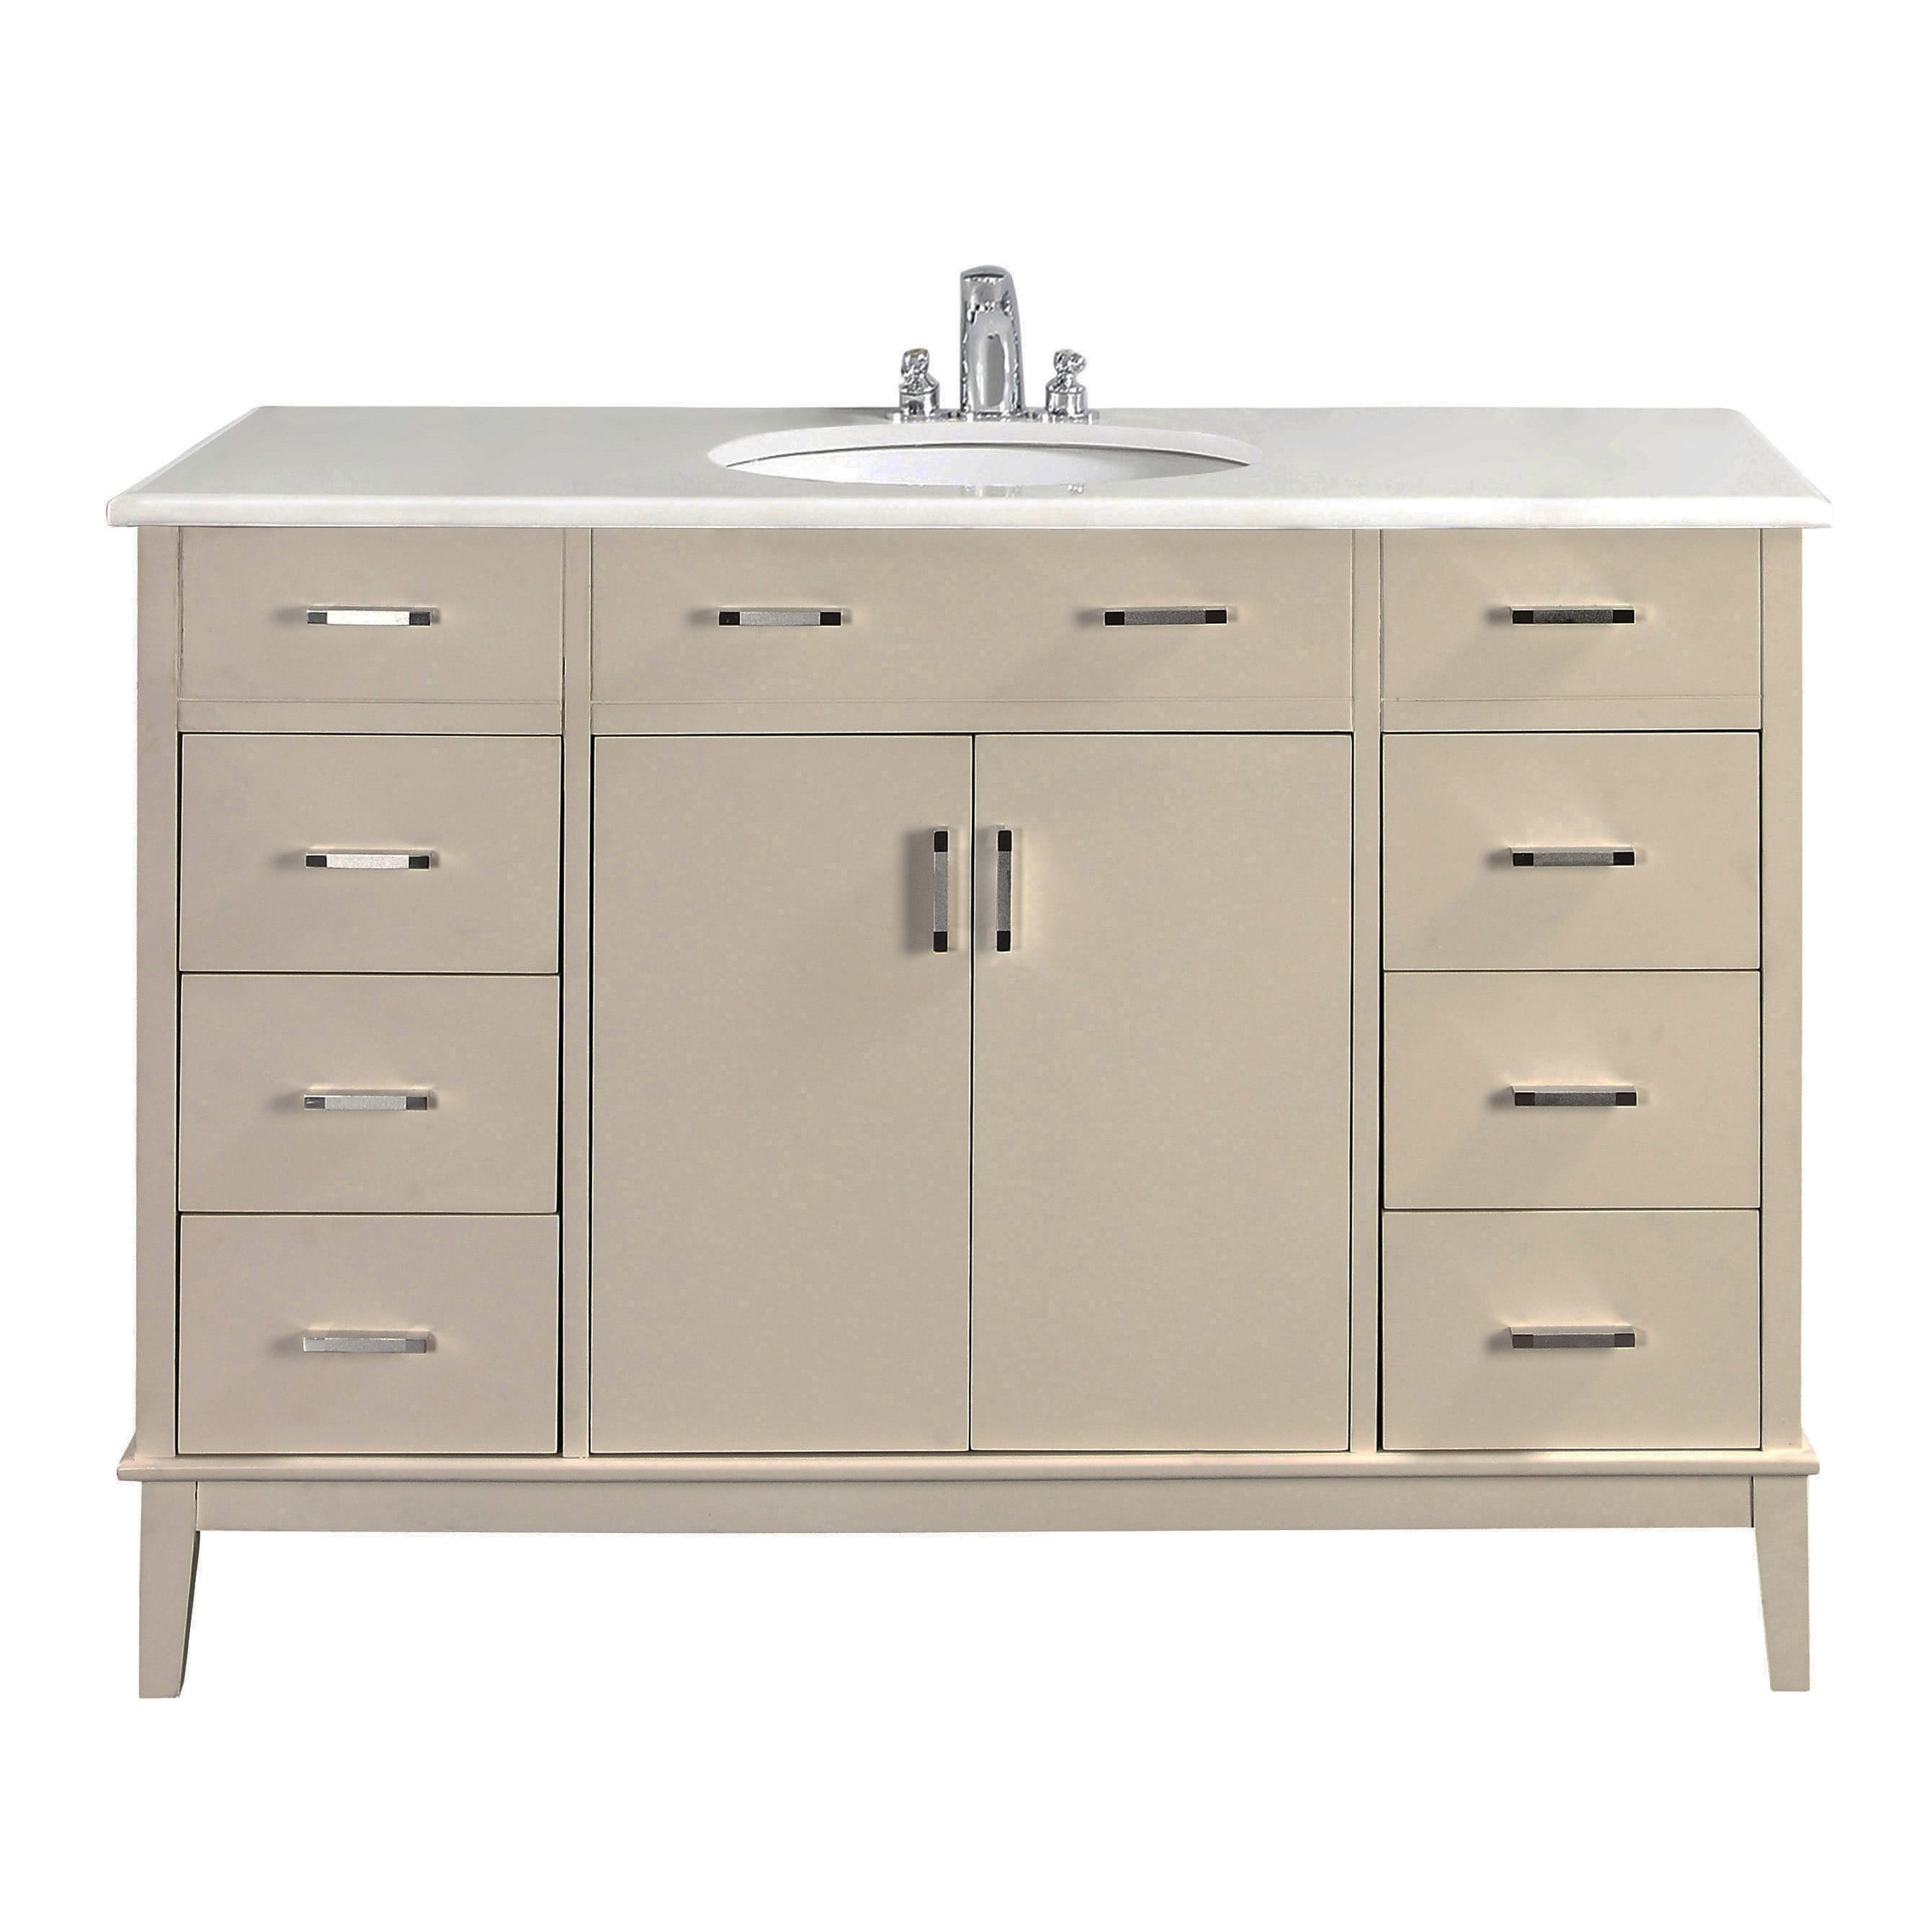 Wyndenhall oxford white 48 inch bath vanity with 2 doors - 48 inch white bathroom vanity with top ...